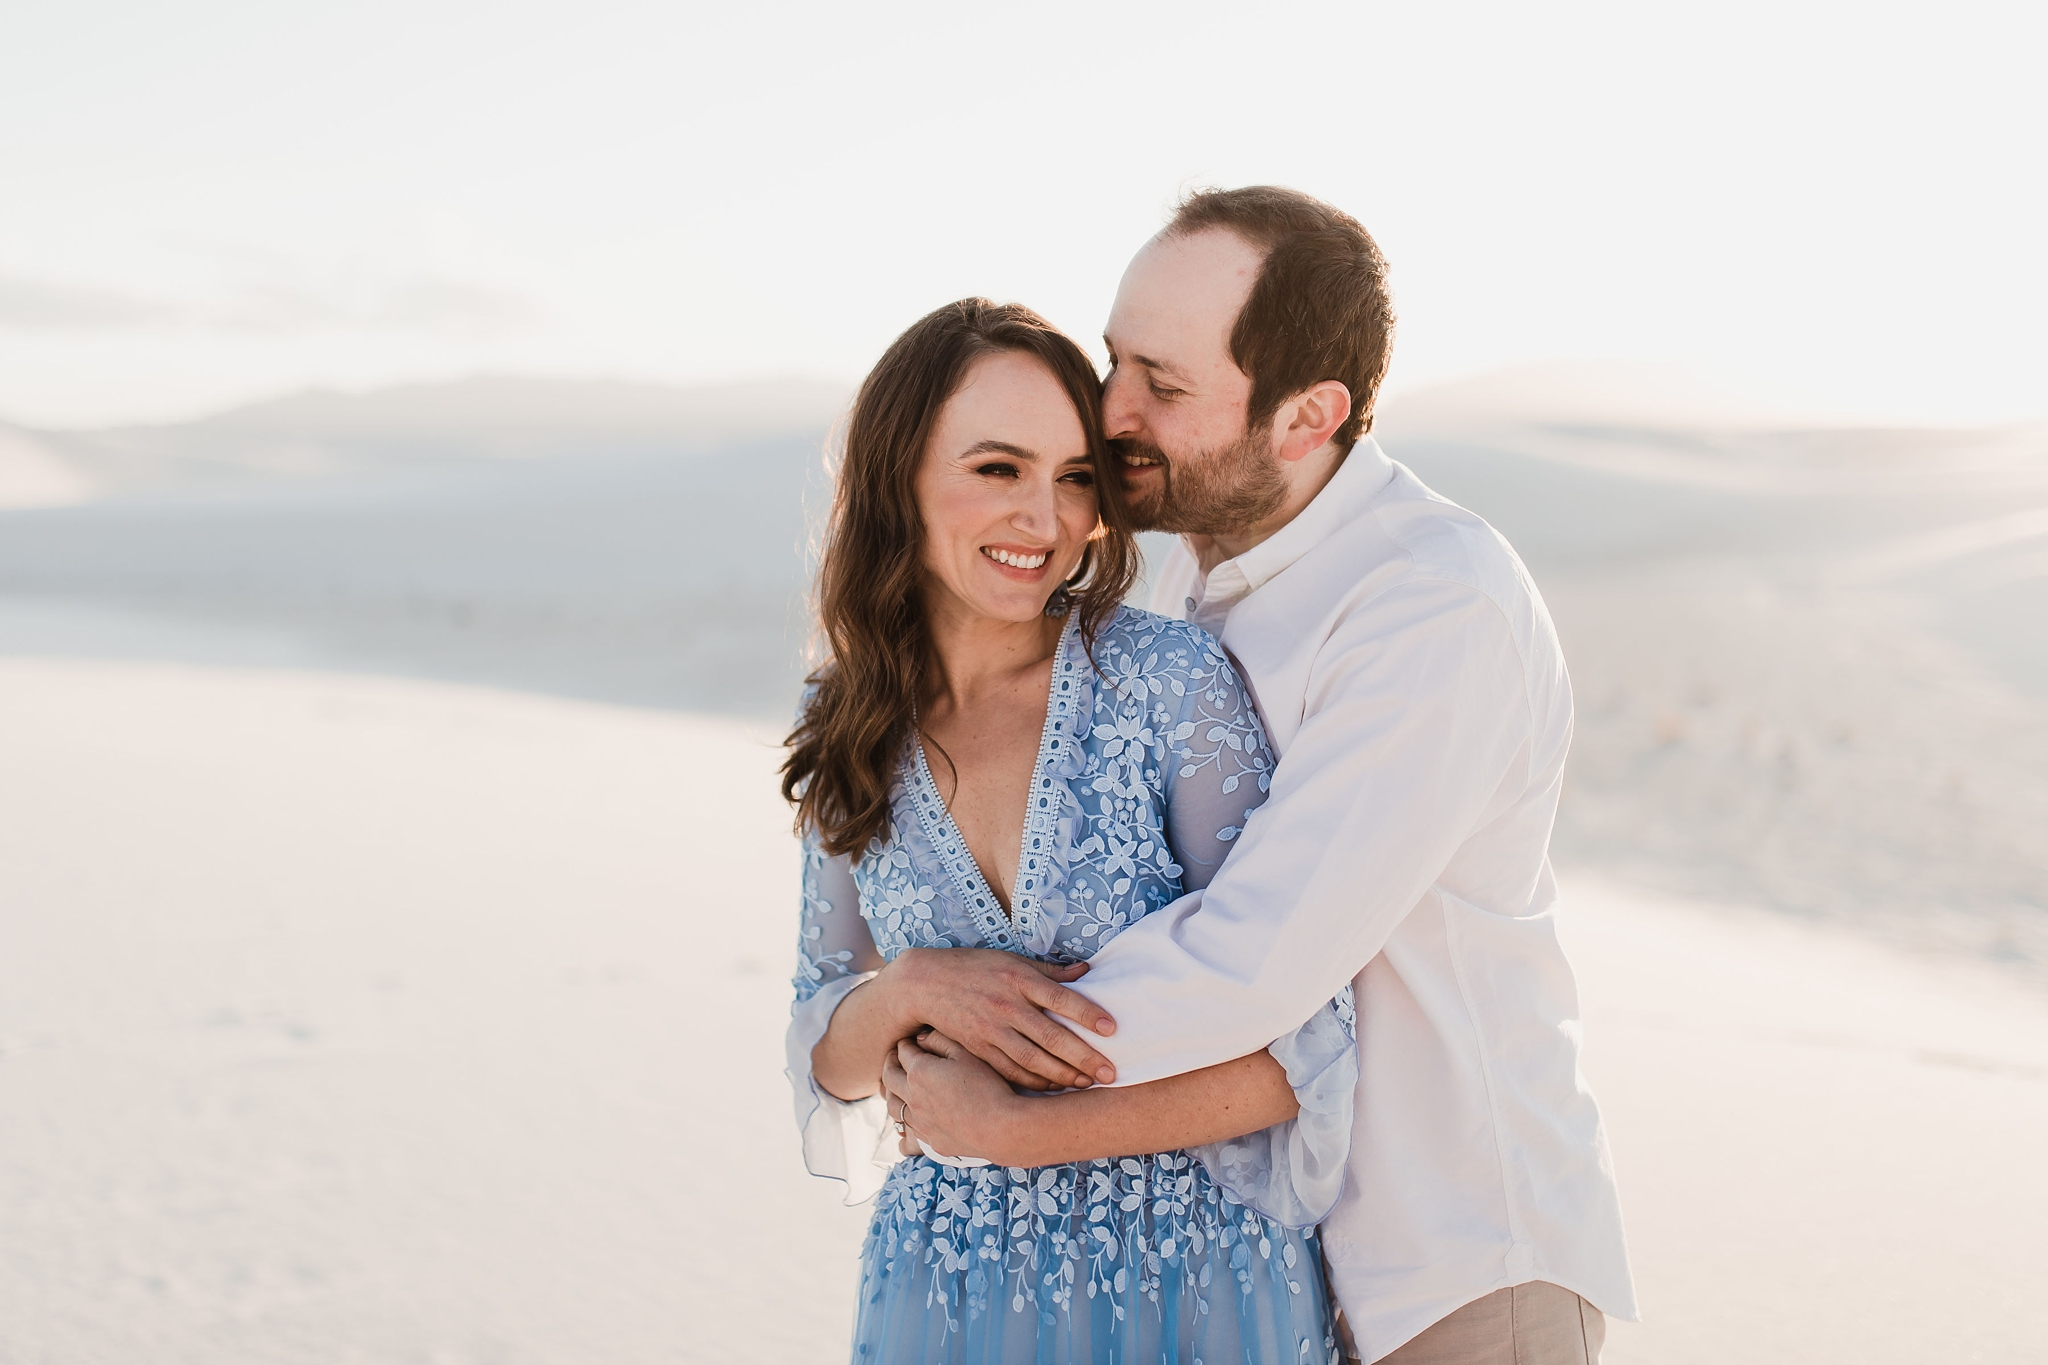 Alicia+lucia+photography+-+albuquerque+wedding+photographer+-+santa+fe+wedding+photography+-+new+mexico+wedding+photographer+-+new+mexico+wedding+-+new+mexico+engagement+-+white+sands+engagement+-+white+sands+national+monument_0033.jpg